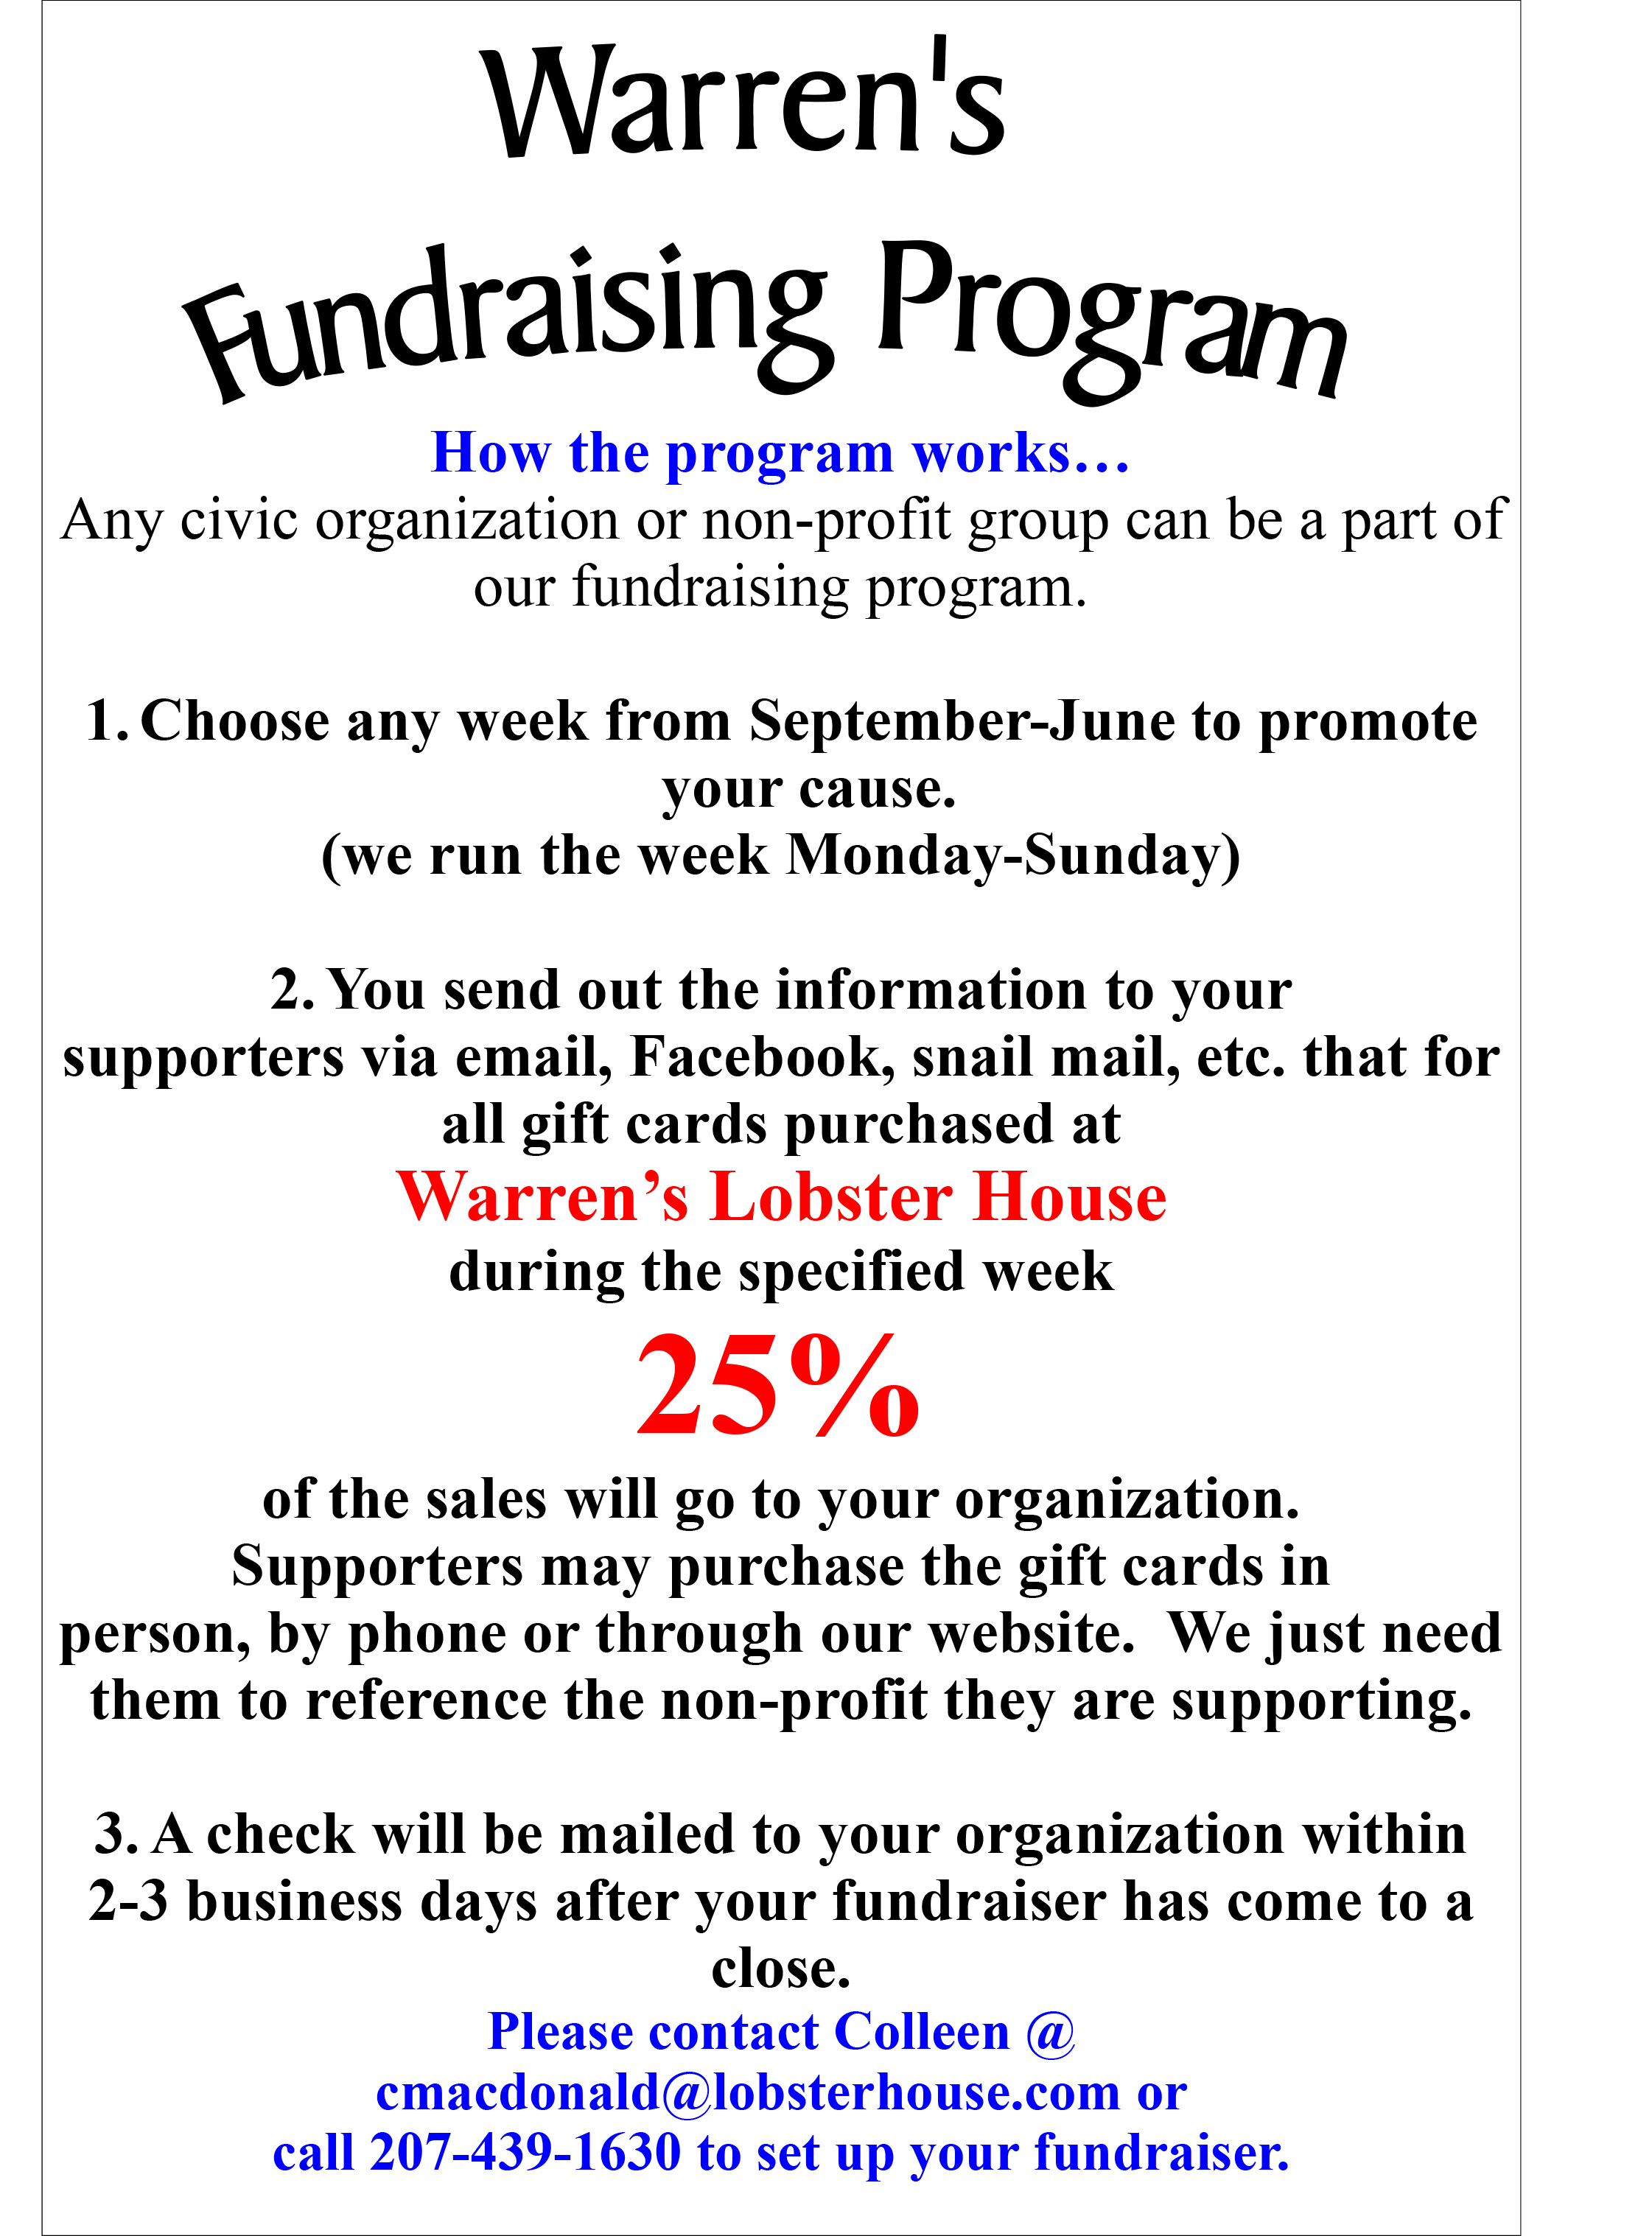 fundraising_program